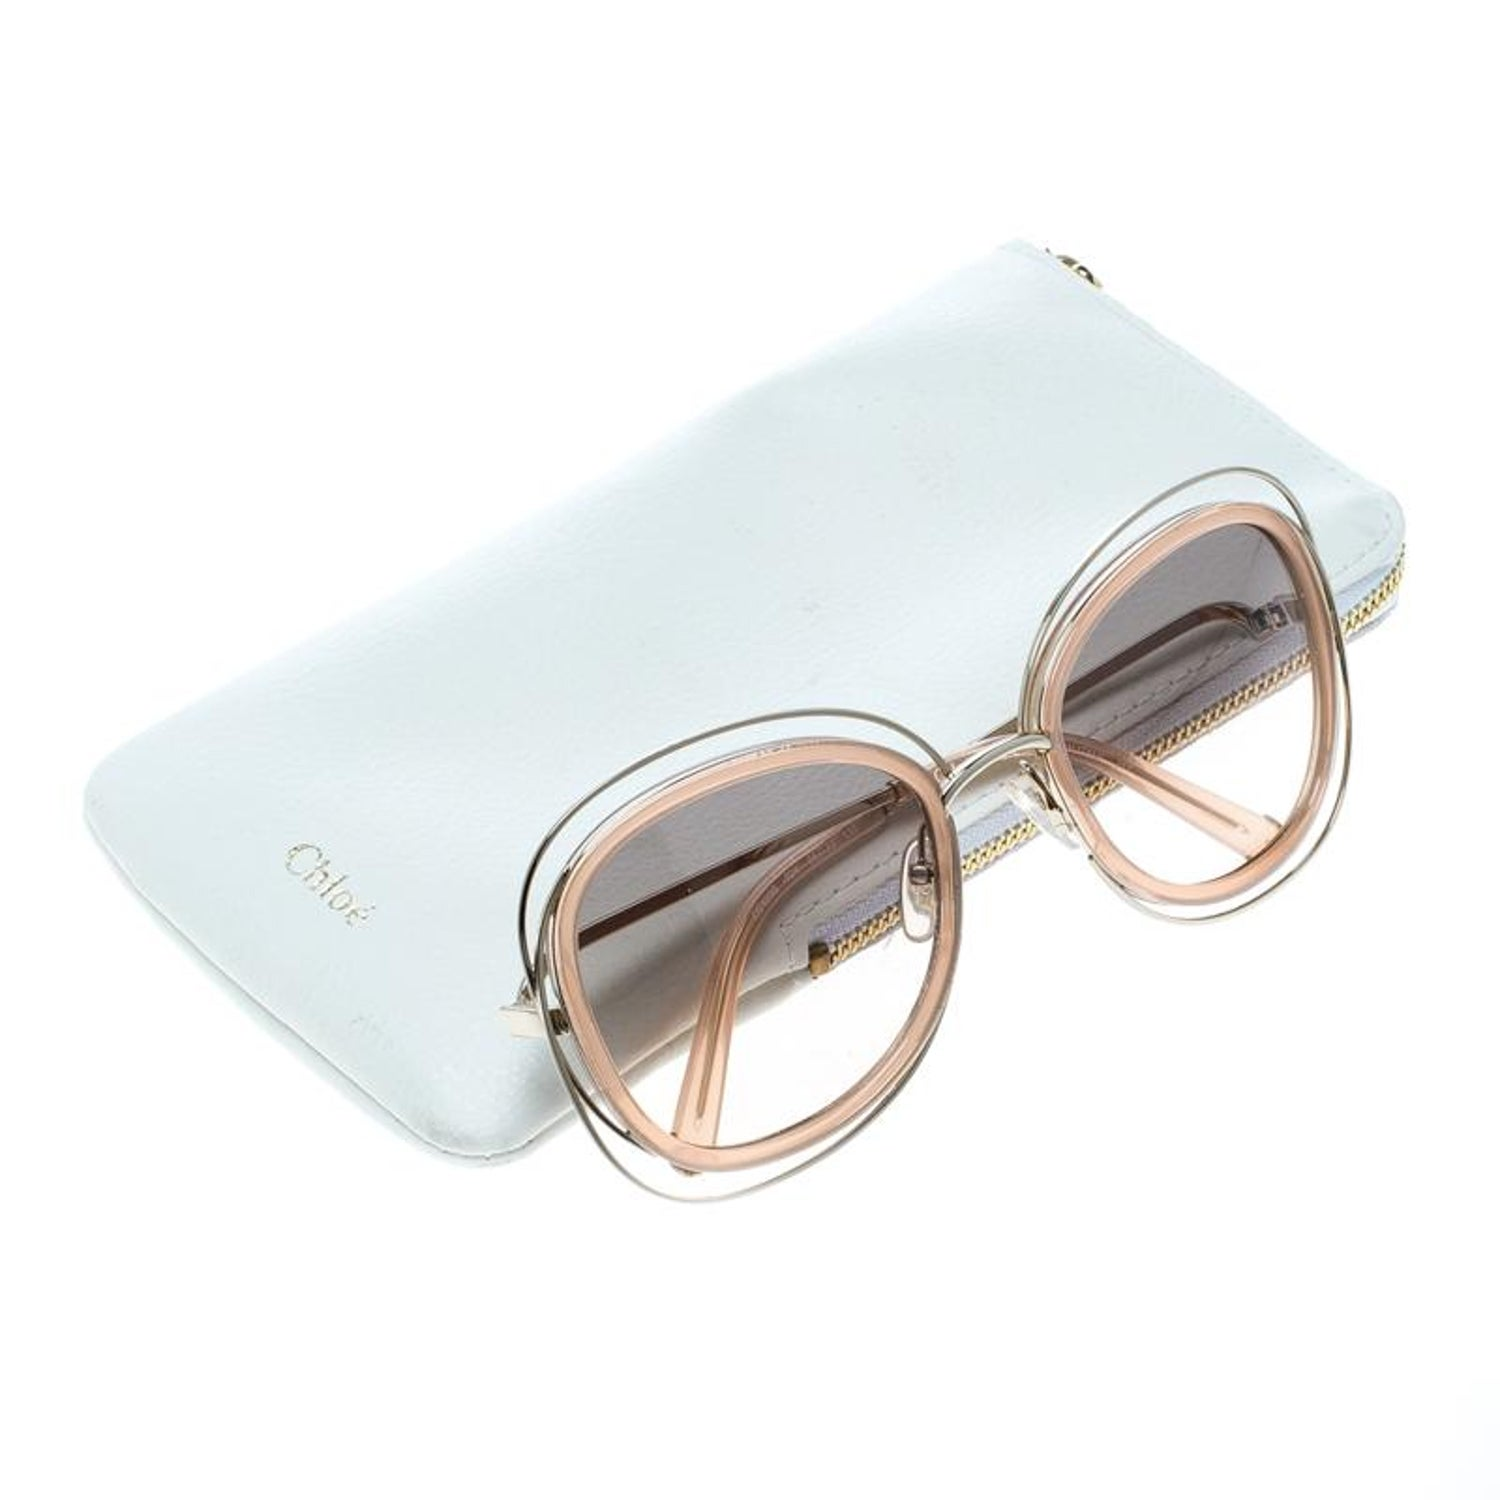 ddb6aee115f0 Chloe Peach Brown Gradient CE123S Carlina Oversized Square Sunglasses For  Sale at 1stdibs